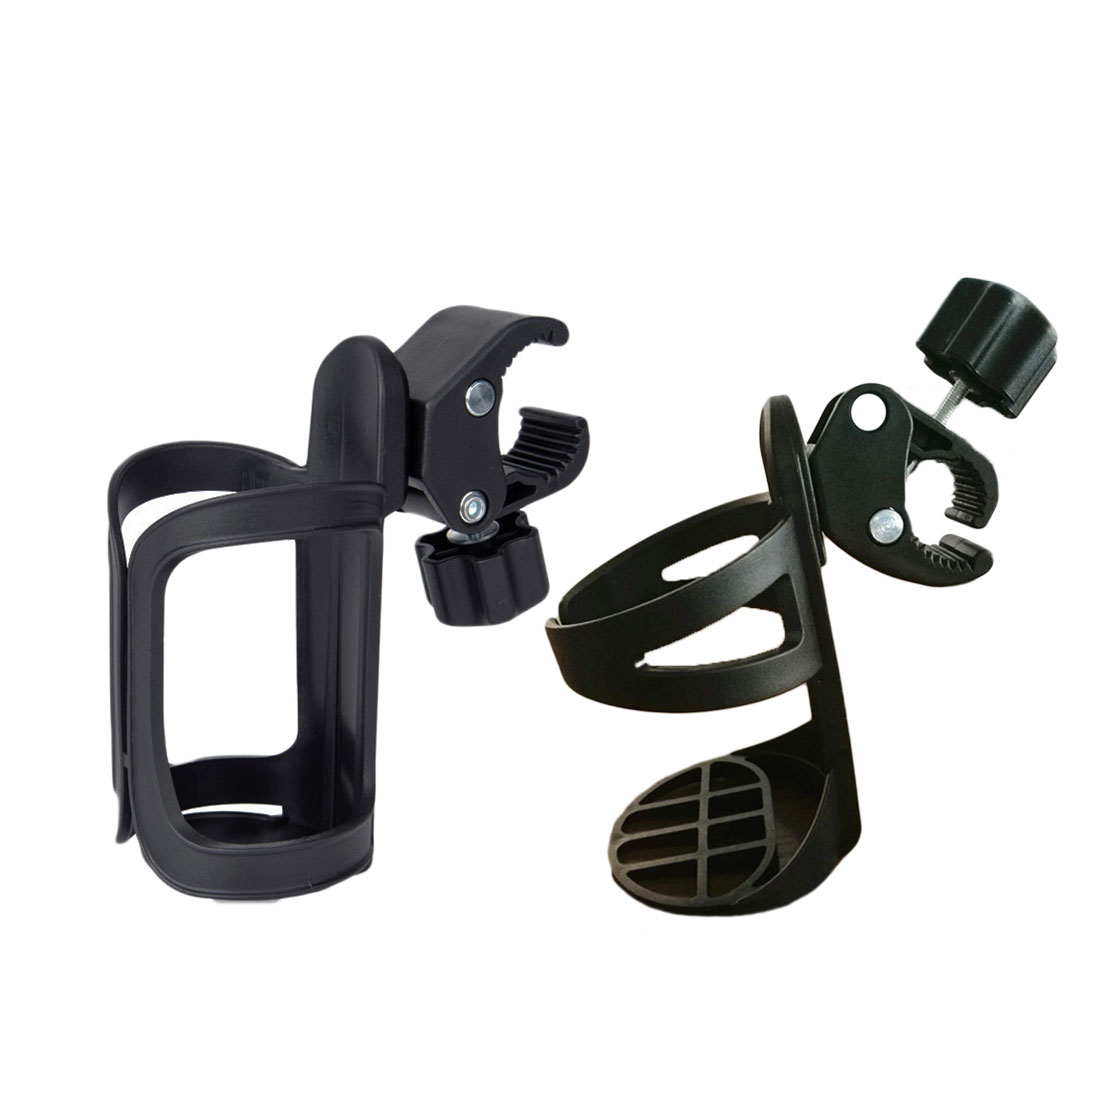 New Baby Stroller Cup Holder Rack Bottle Universal 360 Rotatable Cup Holder for Pram Stroller Carrying Case Milk Bottle Cart in Strollers Accessories from Mother Kids